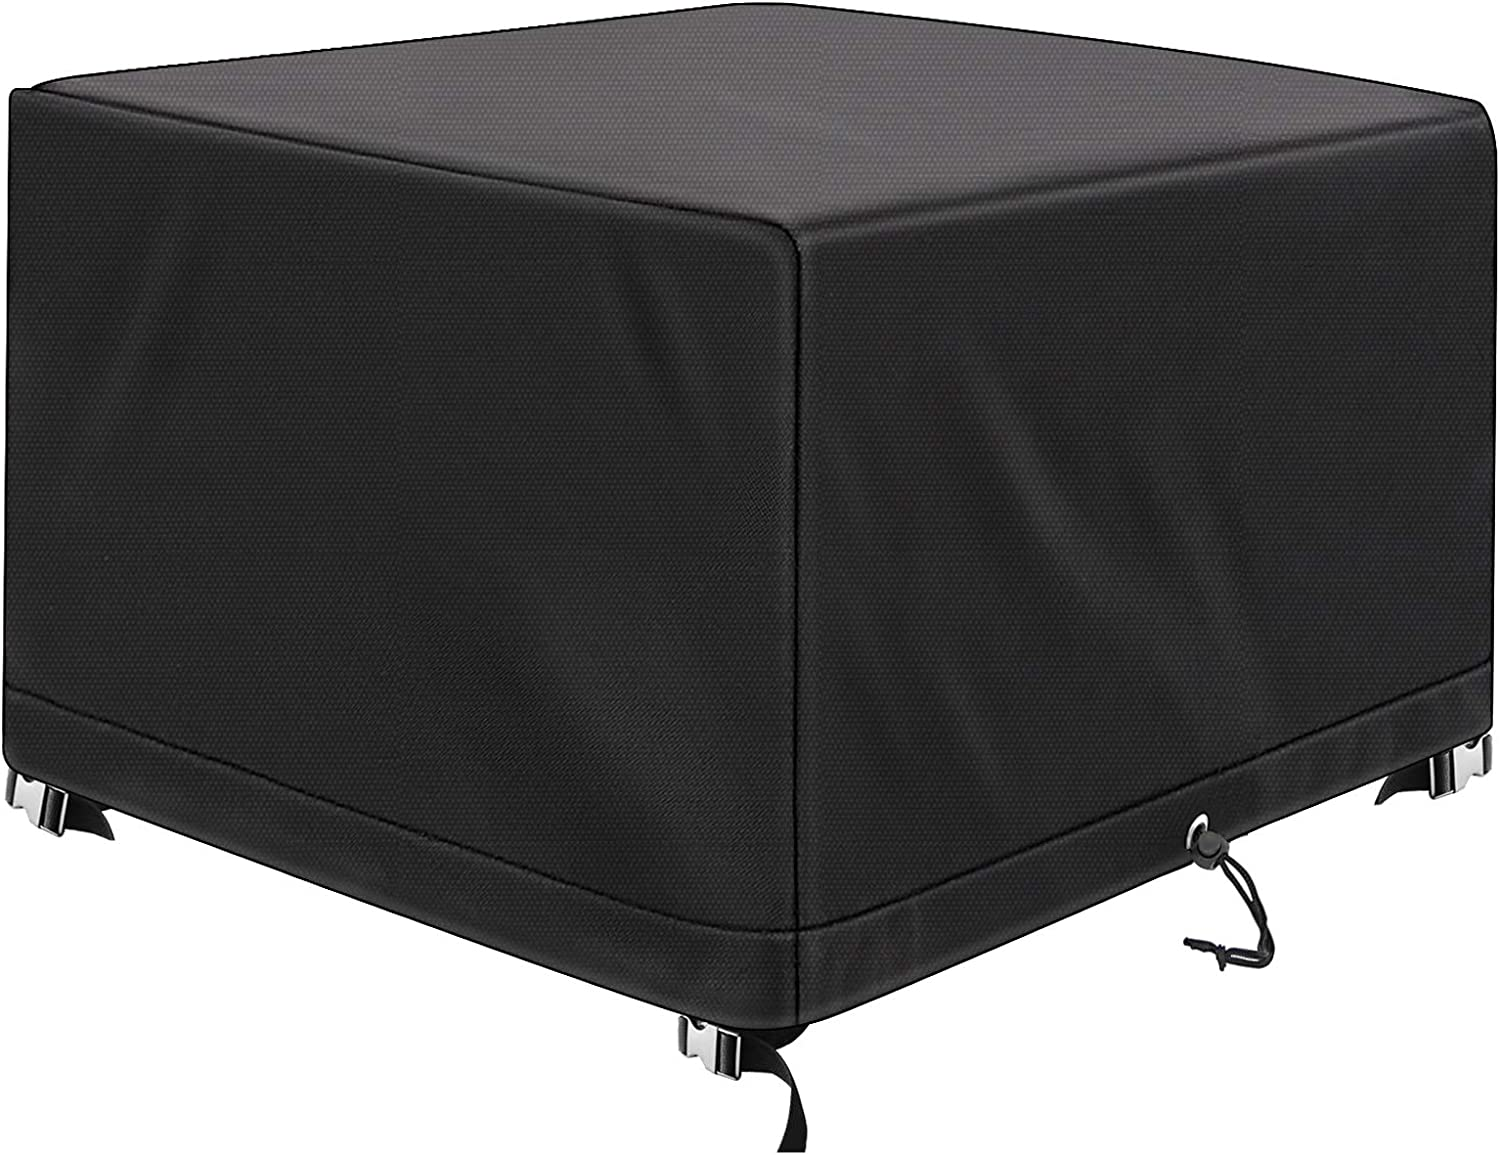 Patio Now on sale Furniture Covers Max 86% OFF Waterproof Tabl Rectangular Square